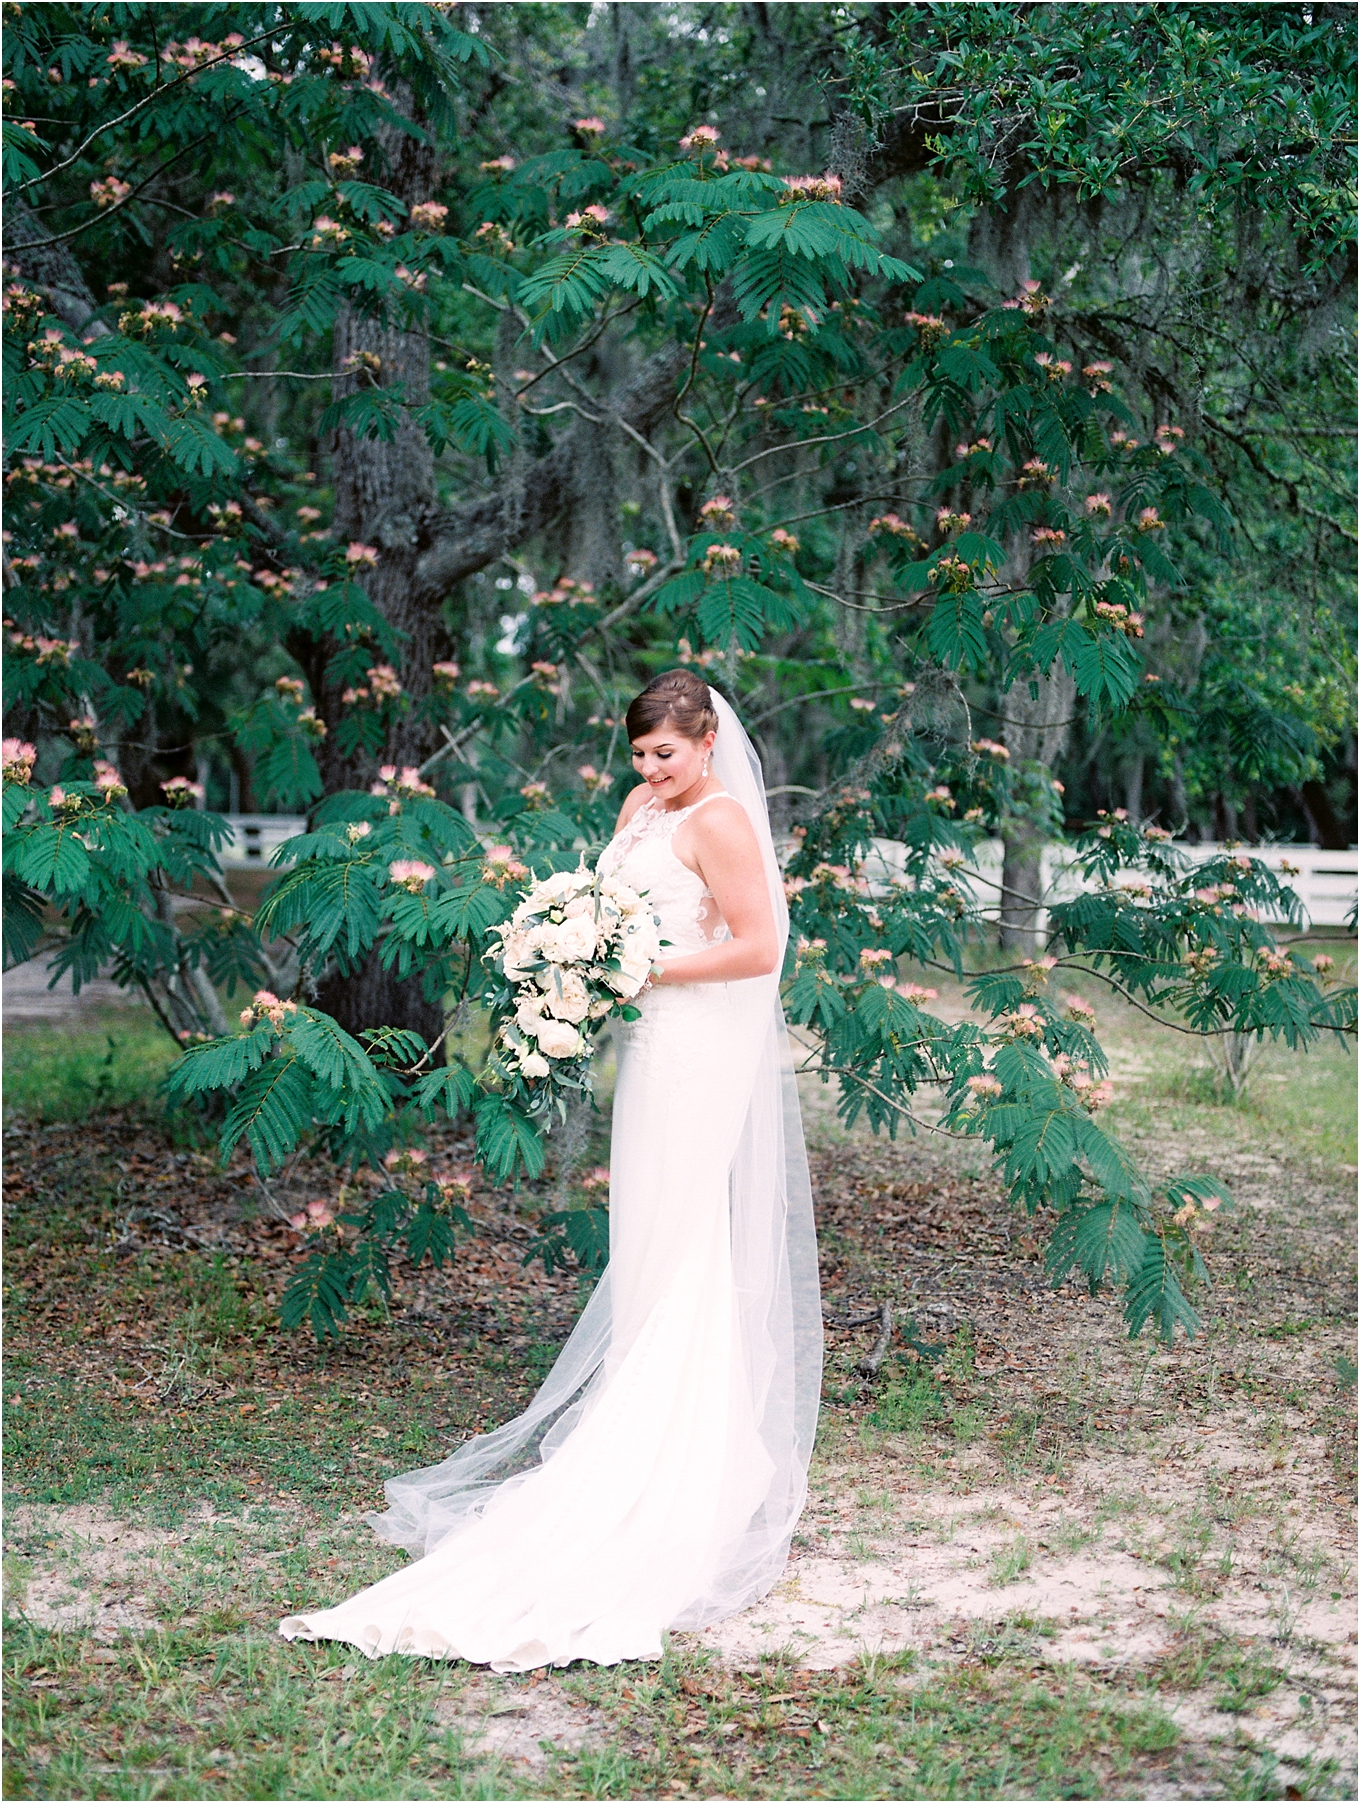 Lisa Silva Photography- Ponte Vedra Beach, St. Augustine and Jacksonville, Florida Fine Art Film Wedding and Boudoir Photography- Elegant Blush and Navy Wedding at Chandler Oaks Barn in St. Augustine, Florida_0032.jpg